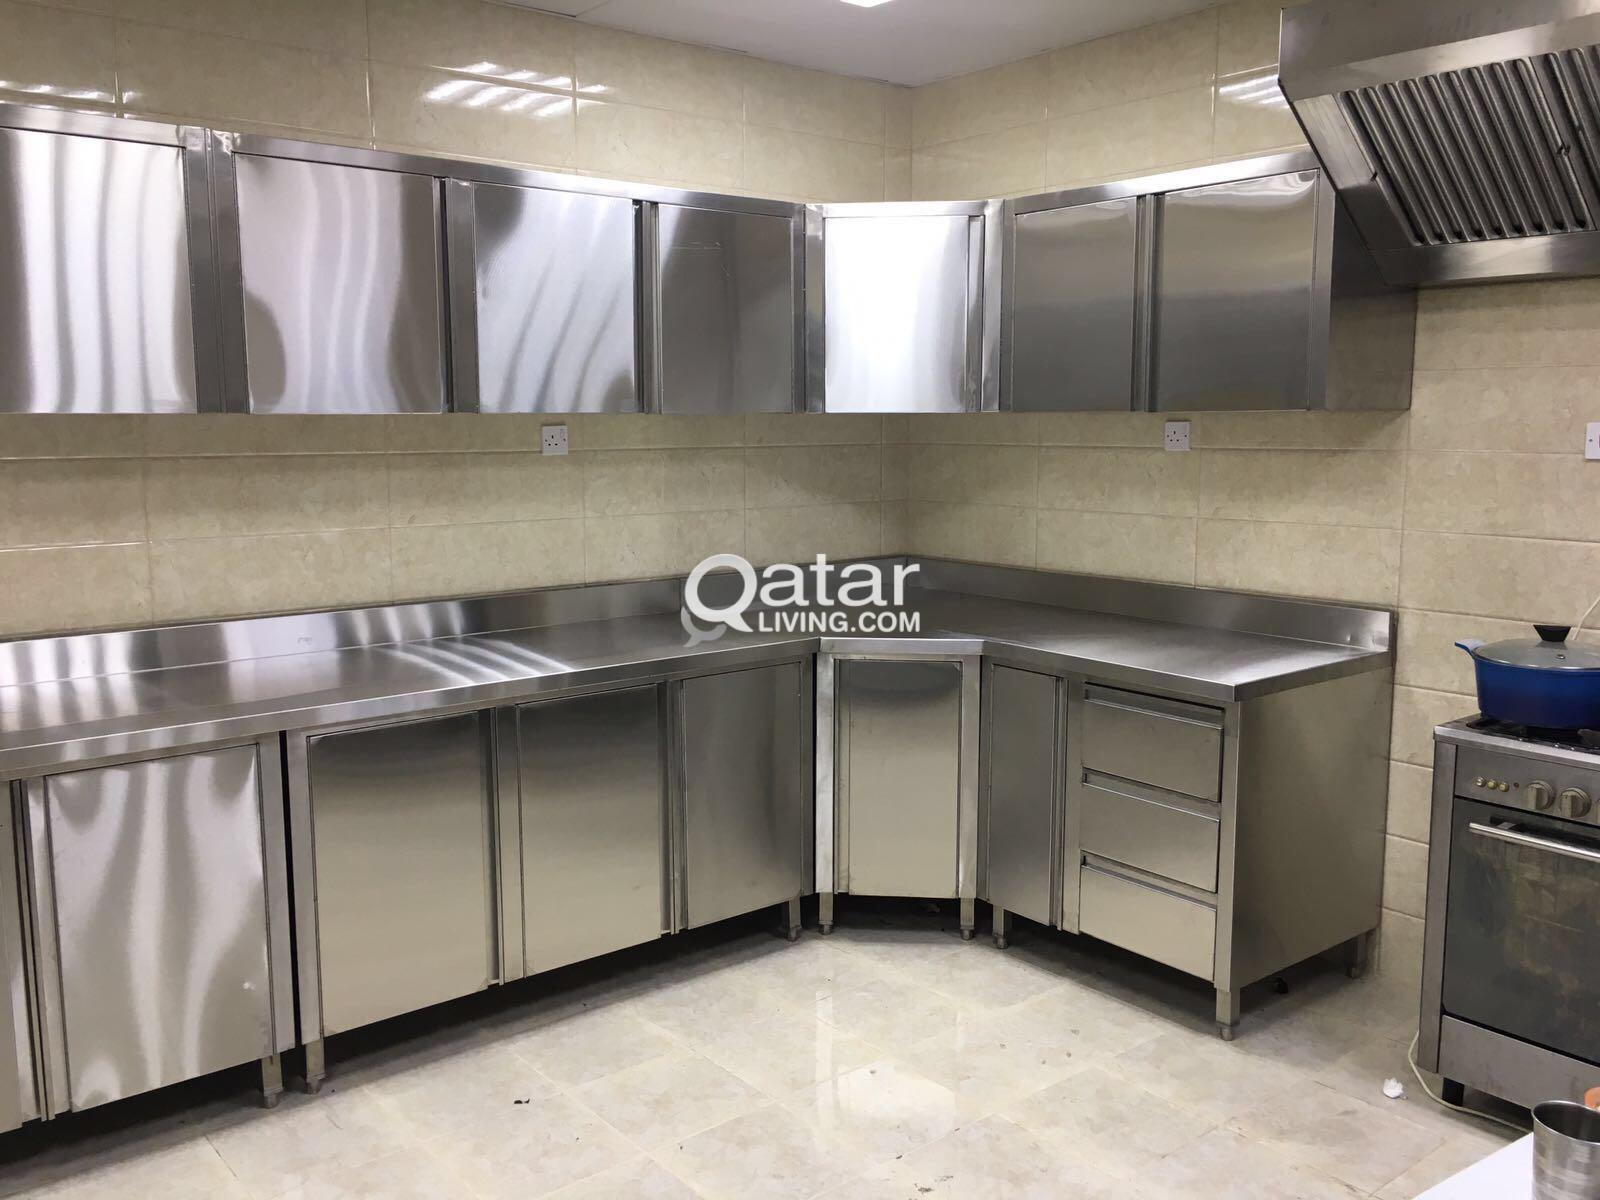 Kitchen equipment and maintenance services | Qatar Living